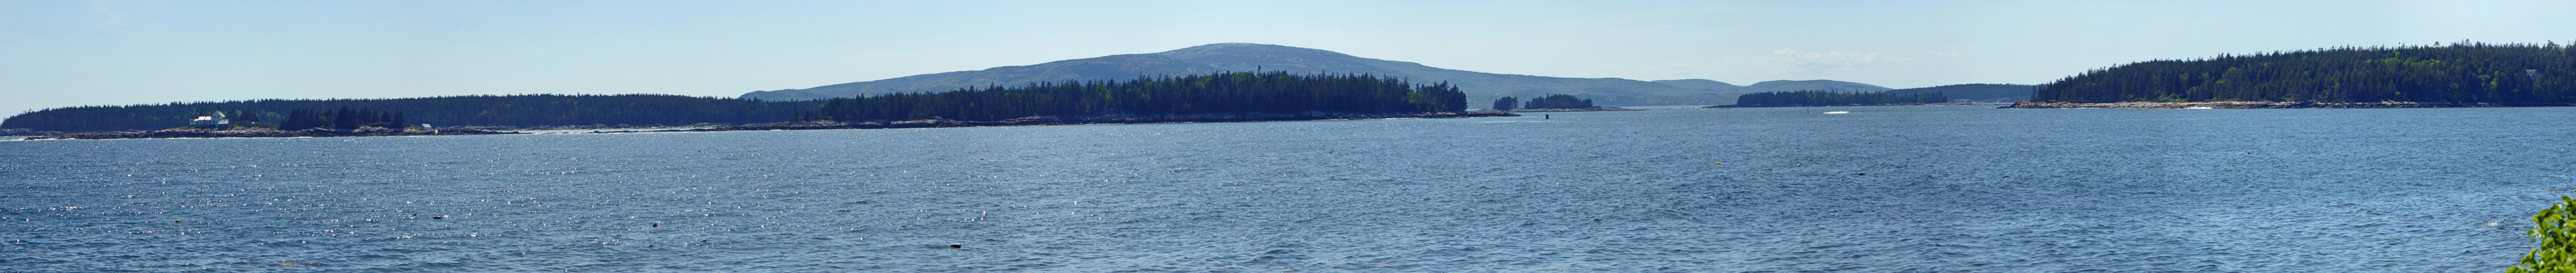 Turtle Island from Schoodic Pen.